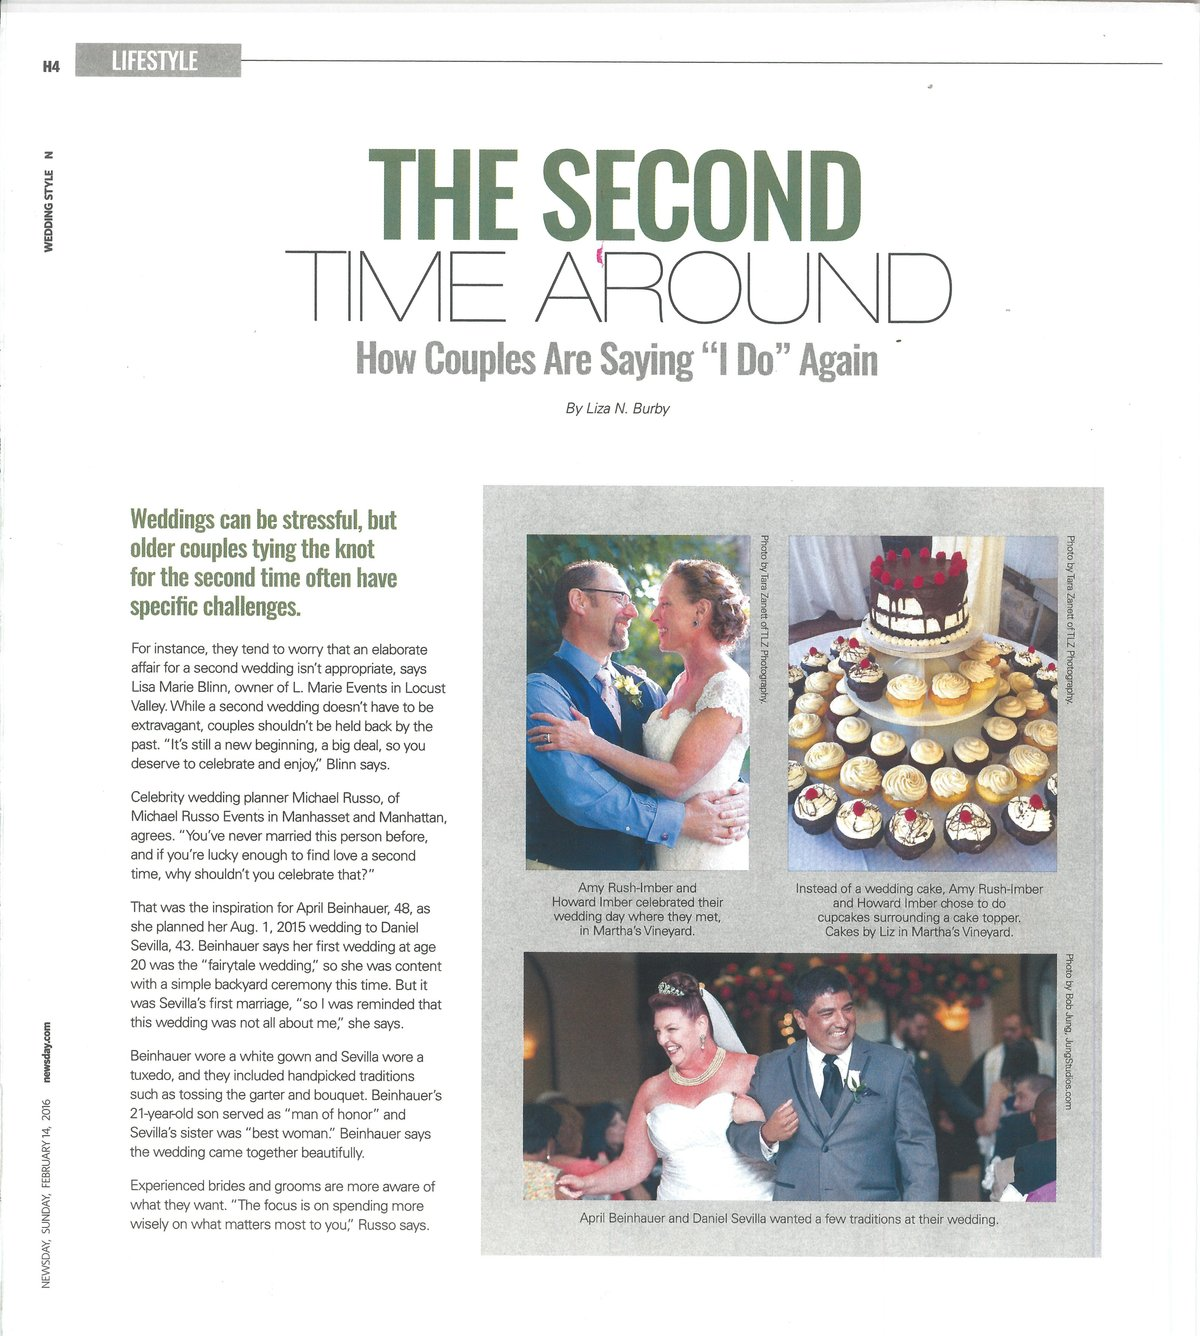 Wedding Style Feb 14, 2016 Article